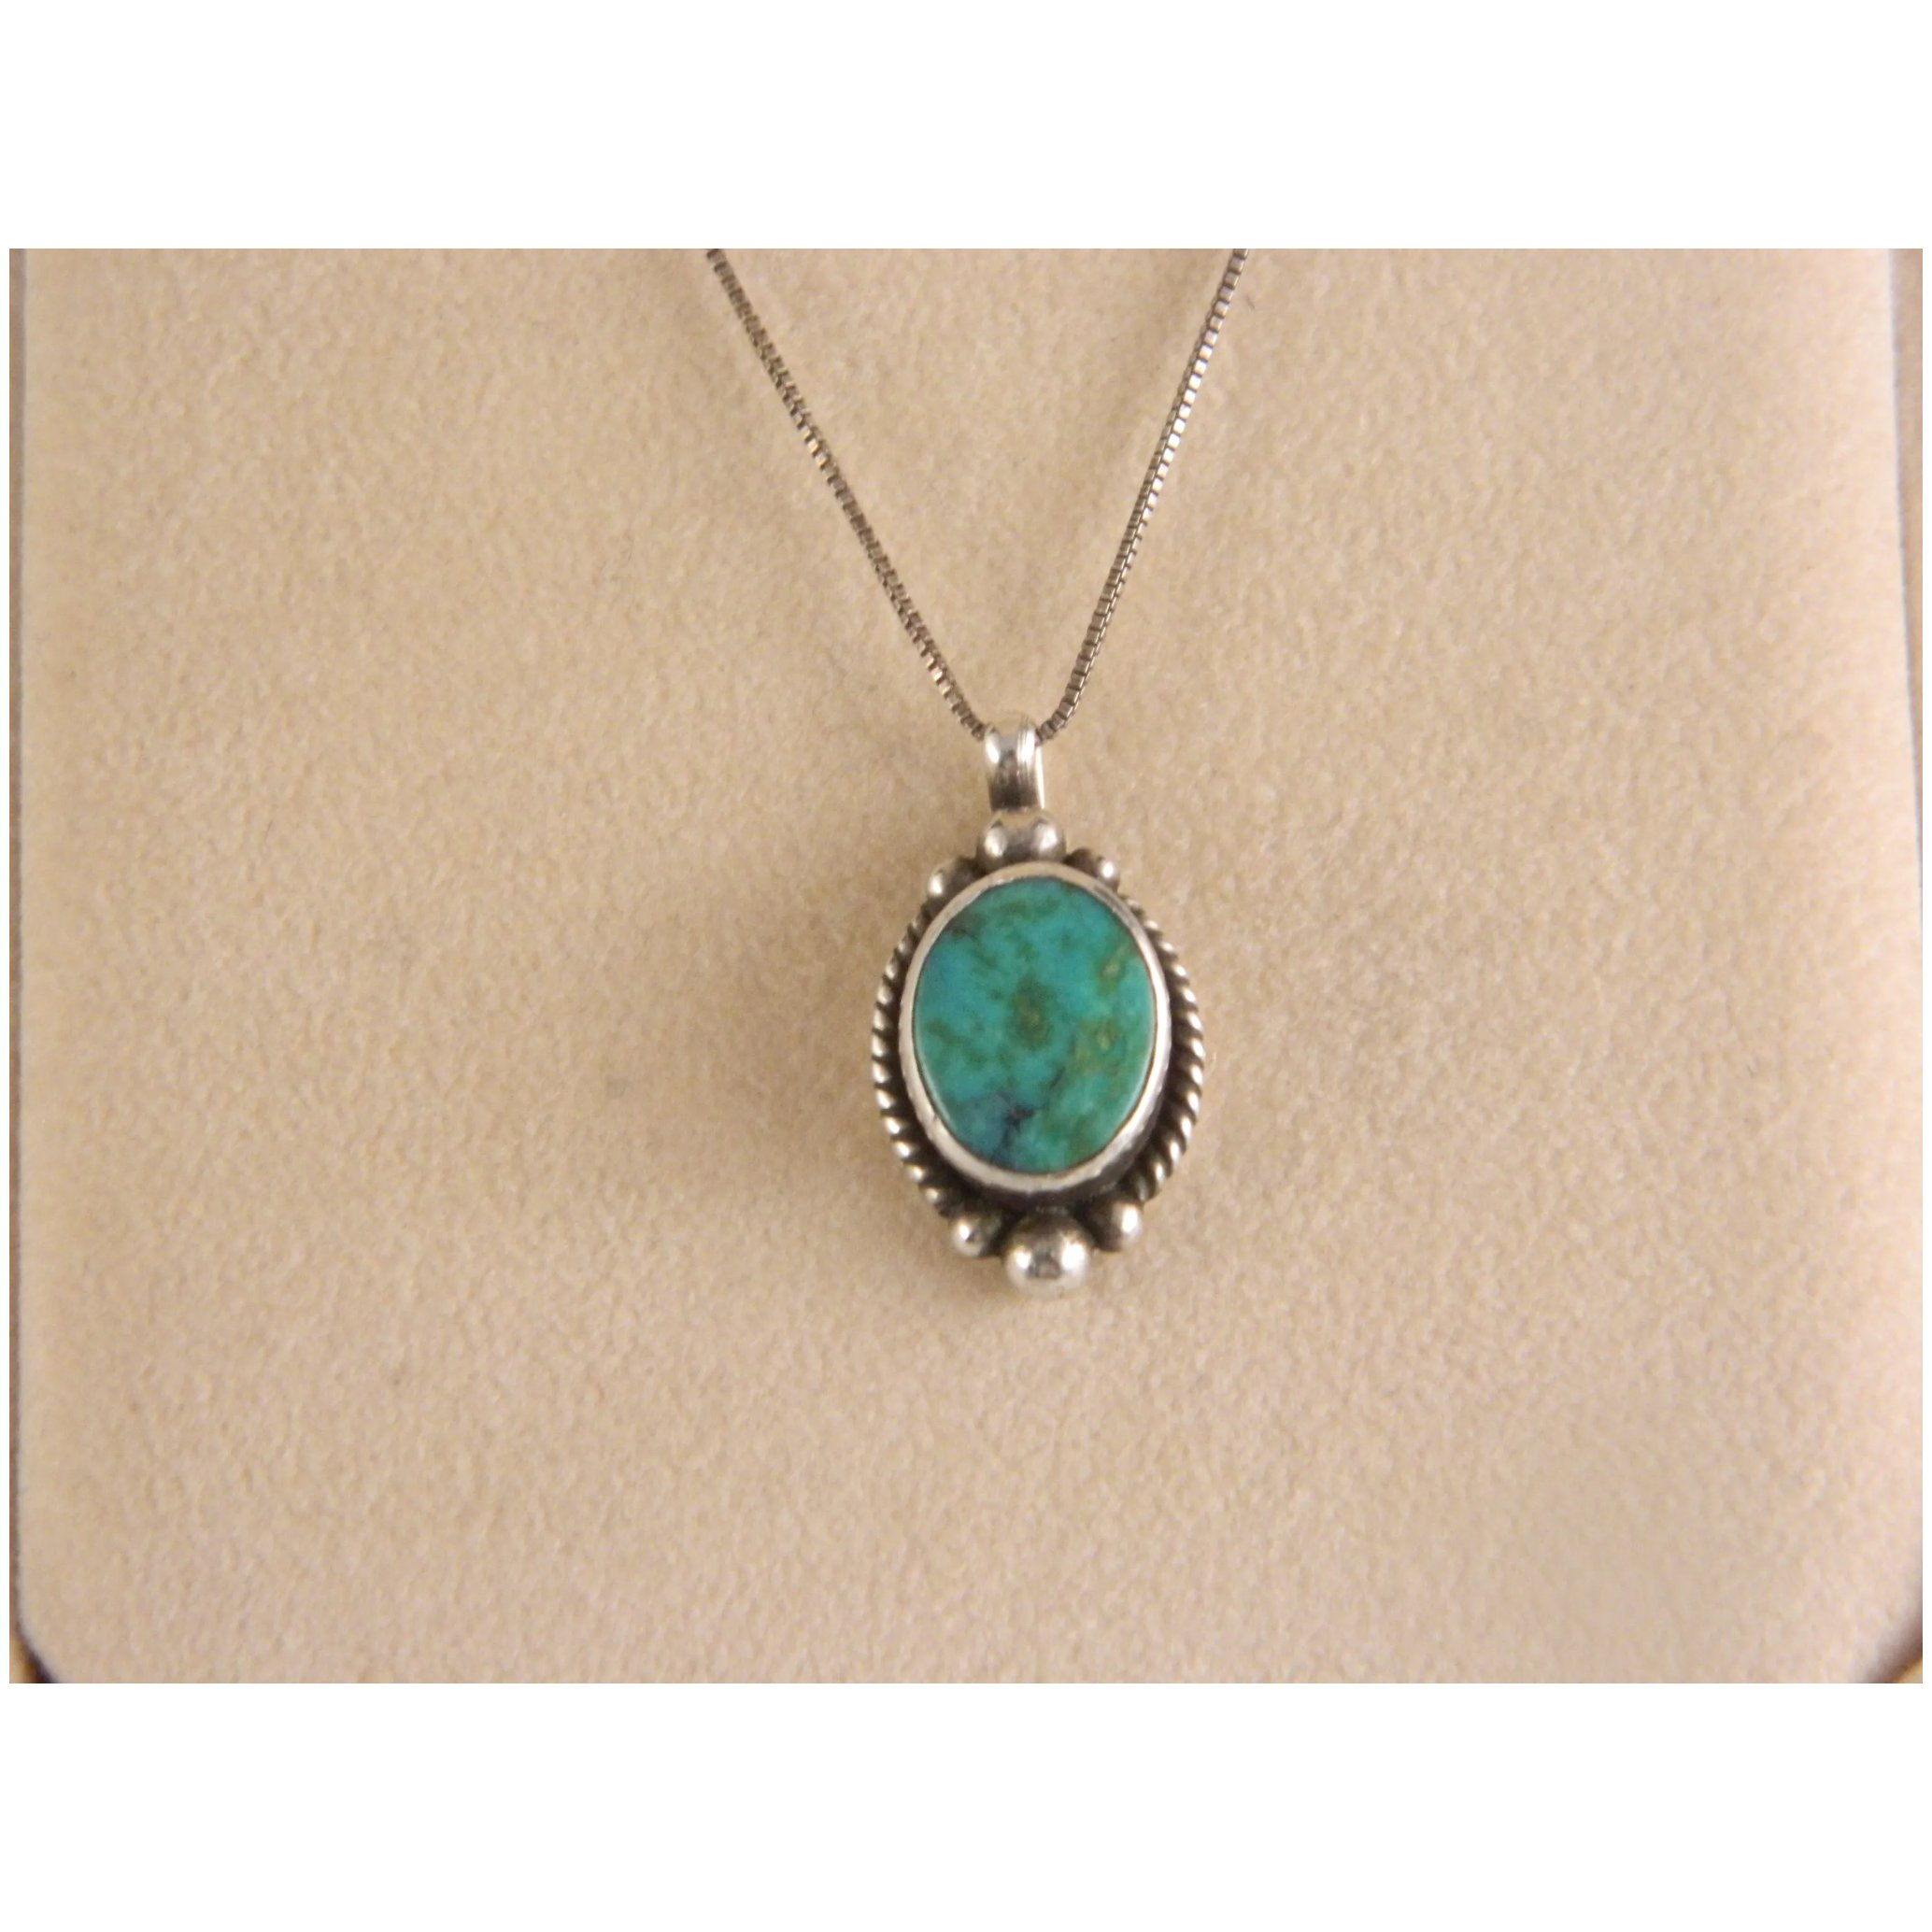 Hubei Turquoise 925 sterling silver pendant P0180